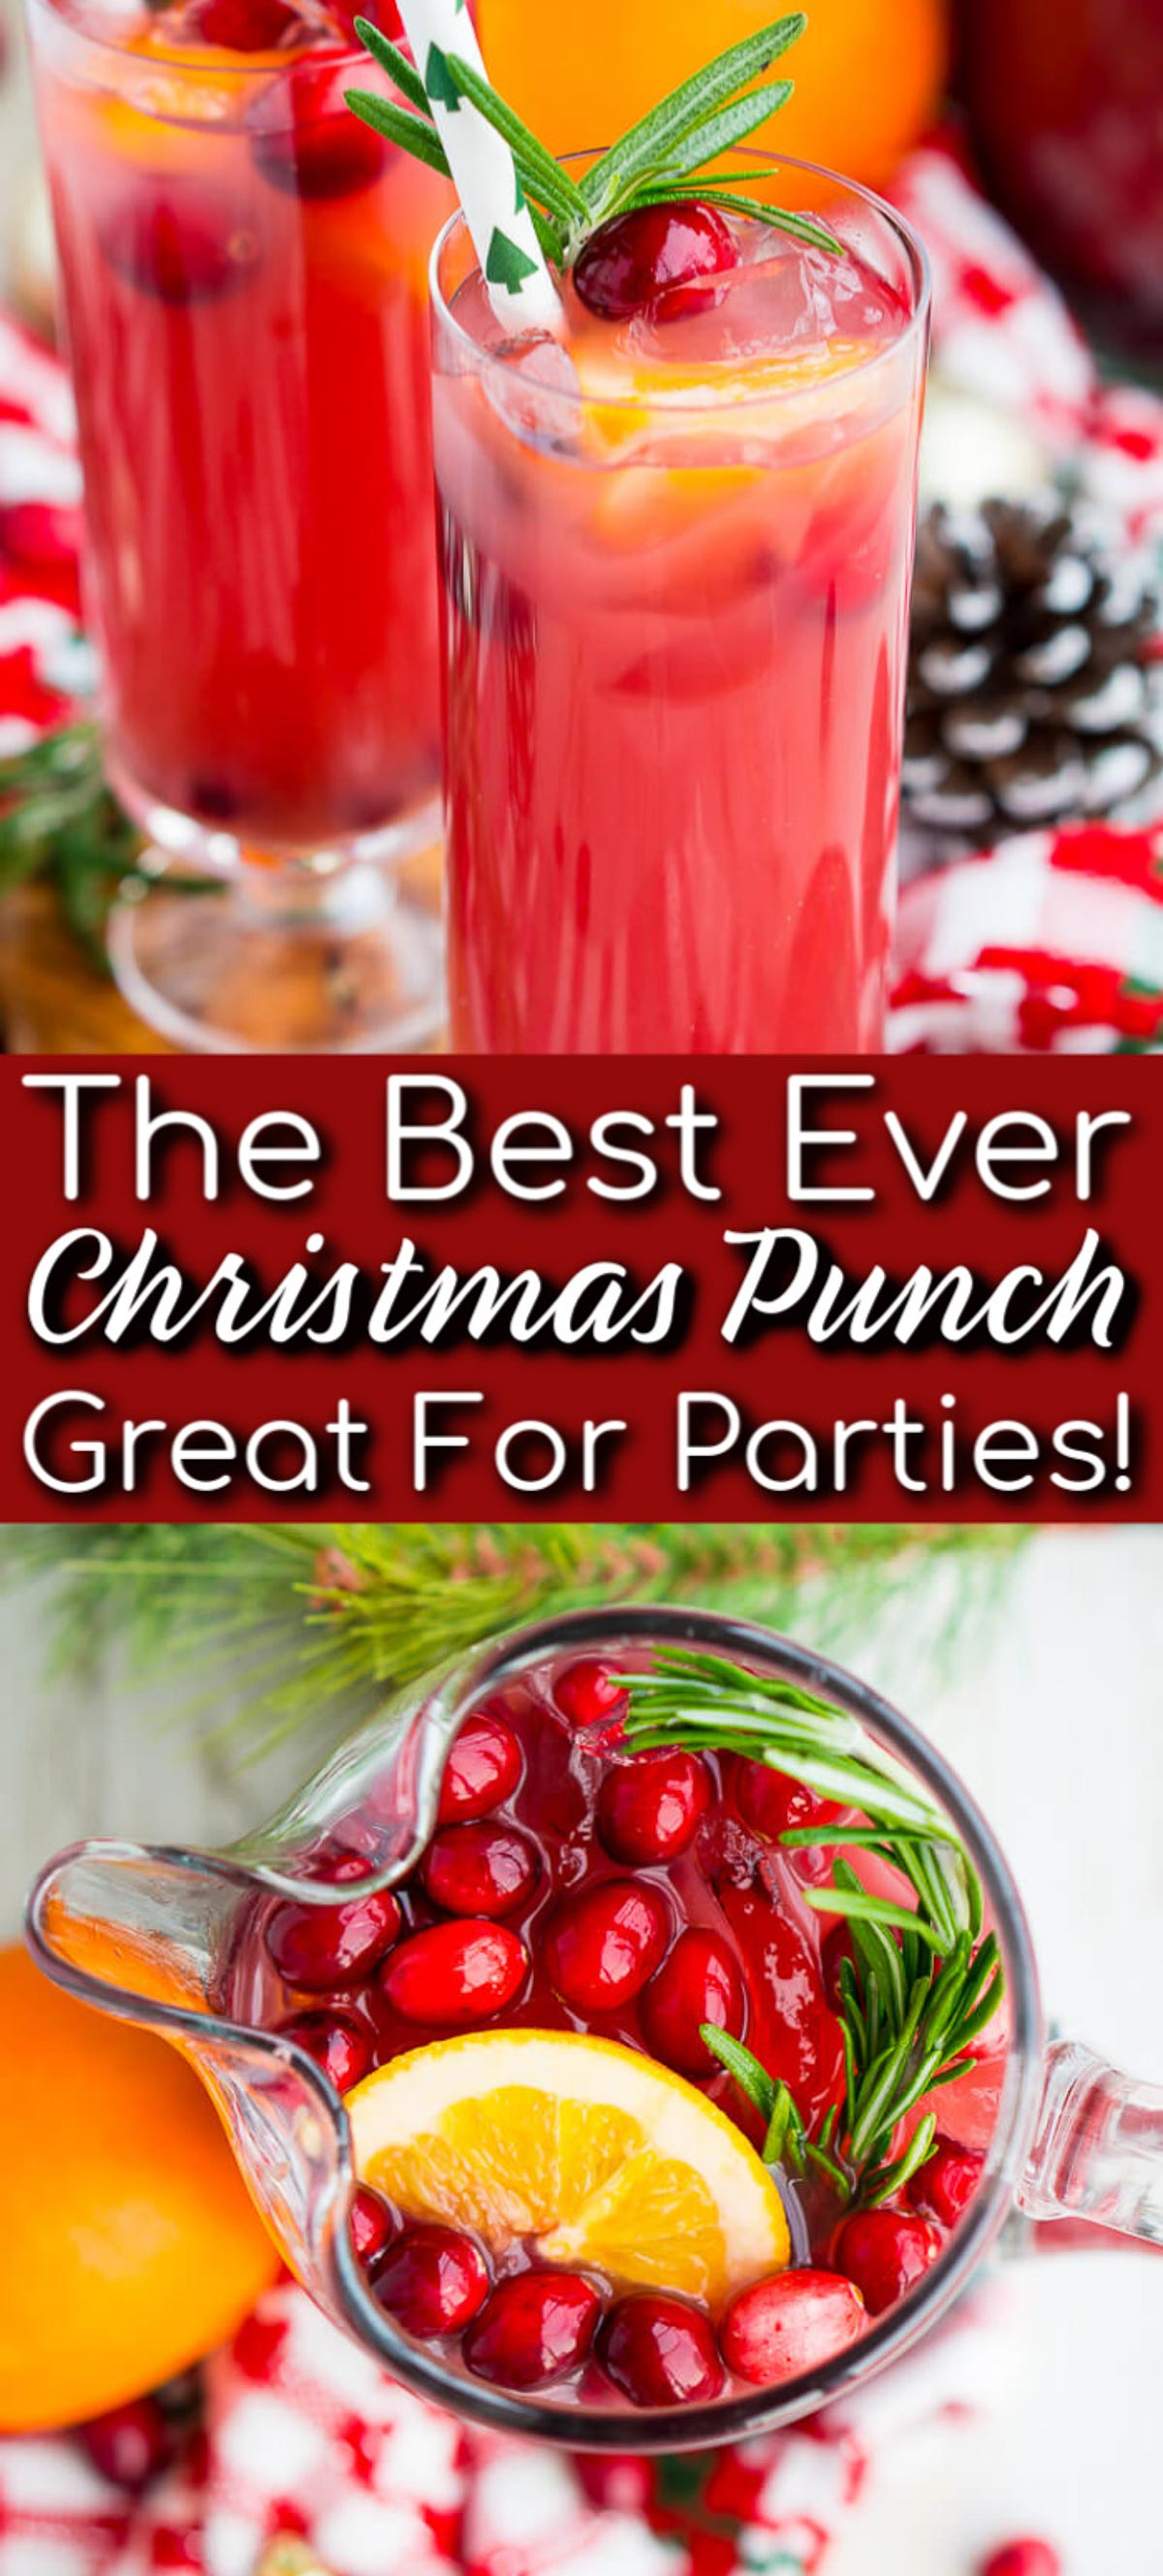 Christmas Punch is an easy and delicious holiday party drink packed with fruits like cranberries, oranges, and pomegranates. Keep it non-alcoholic or add rum or vodka for extra holiday spirit! via @sugarandsoulco